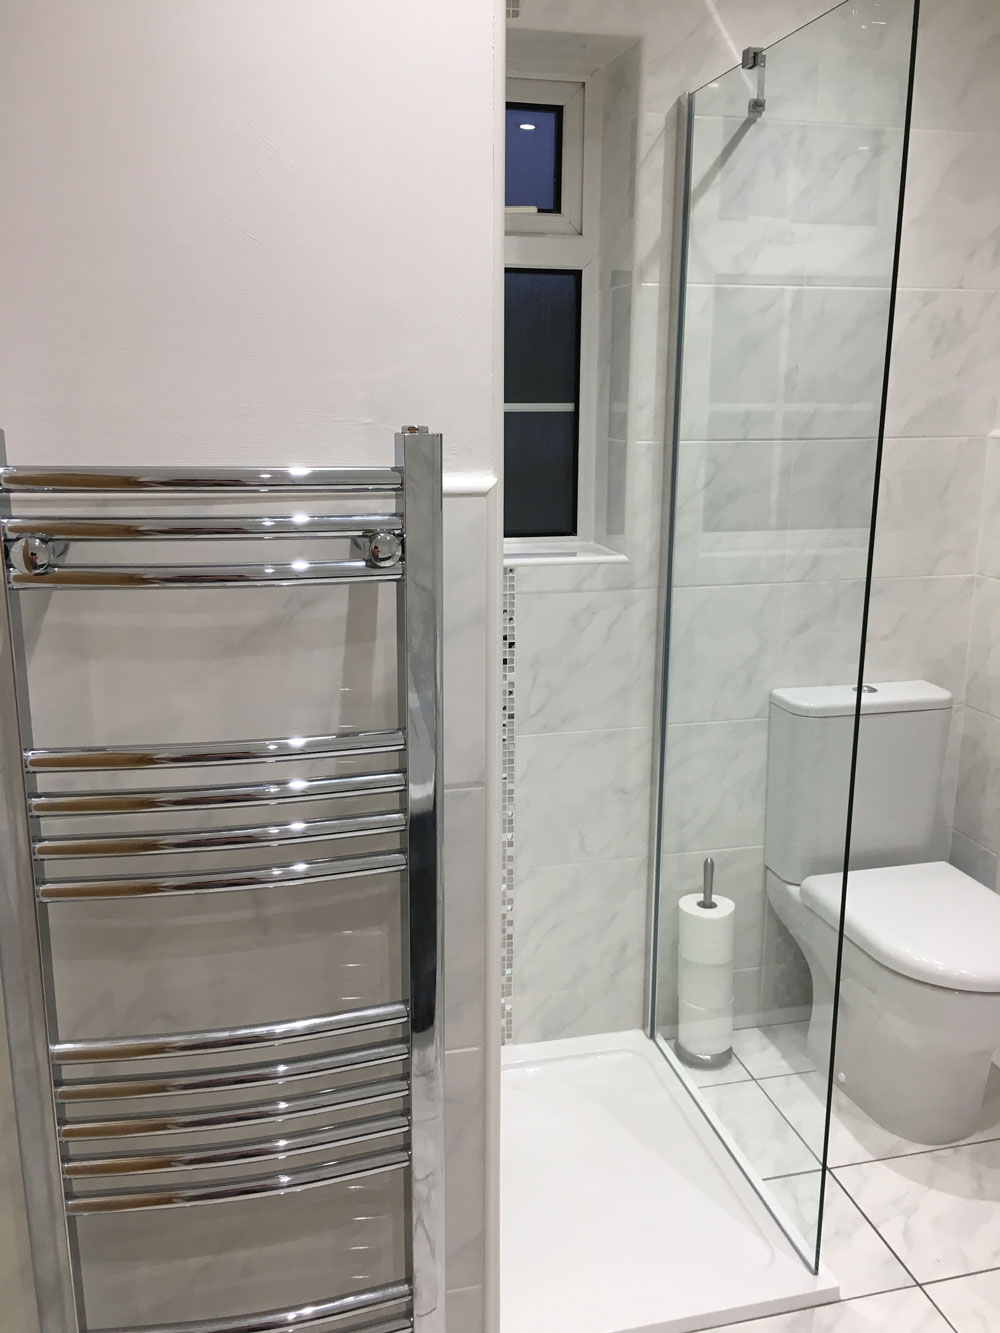 Bathrooms birmingham uk - Here Is What We Recommend You Do Now